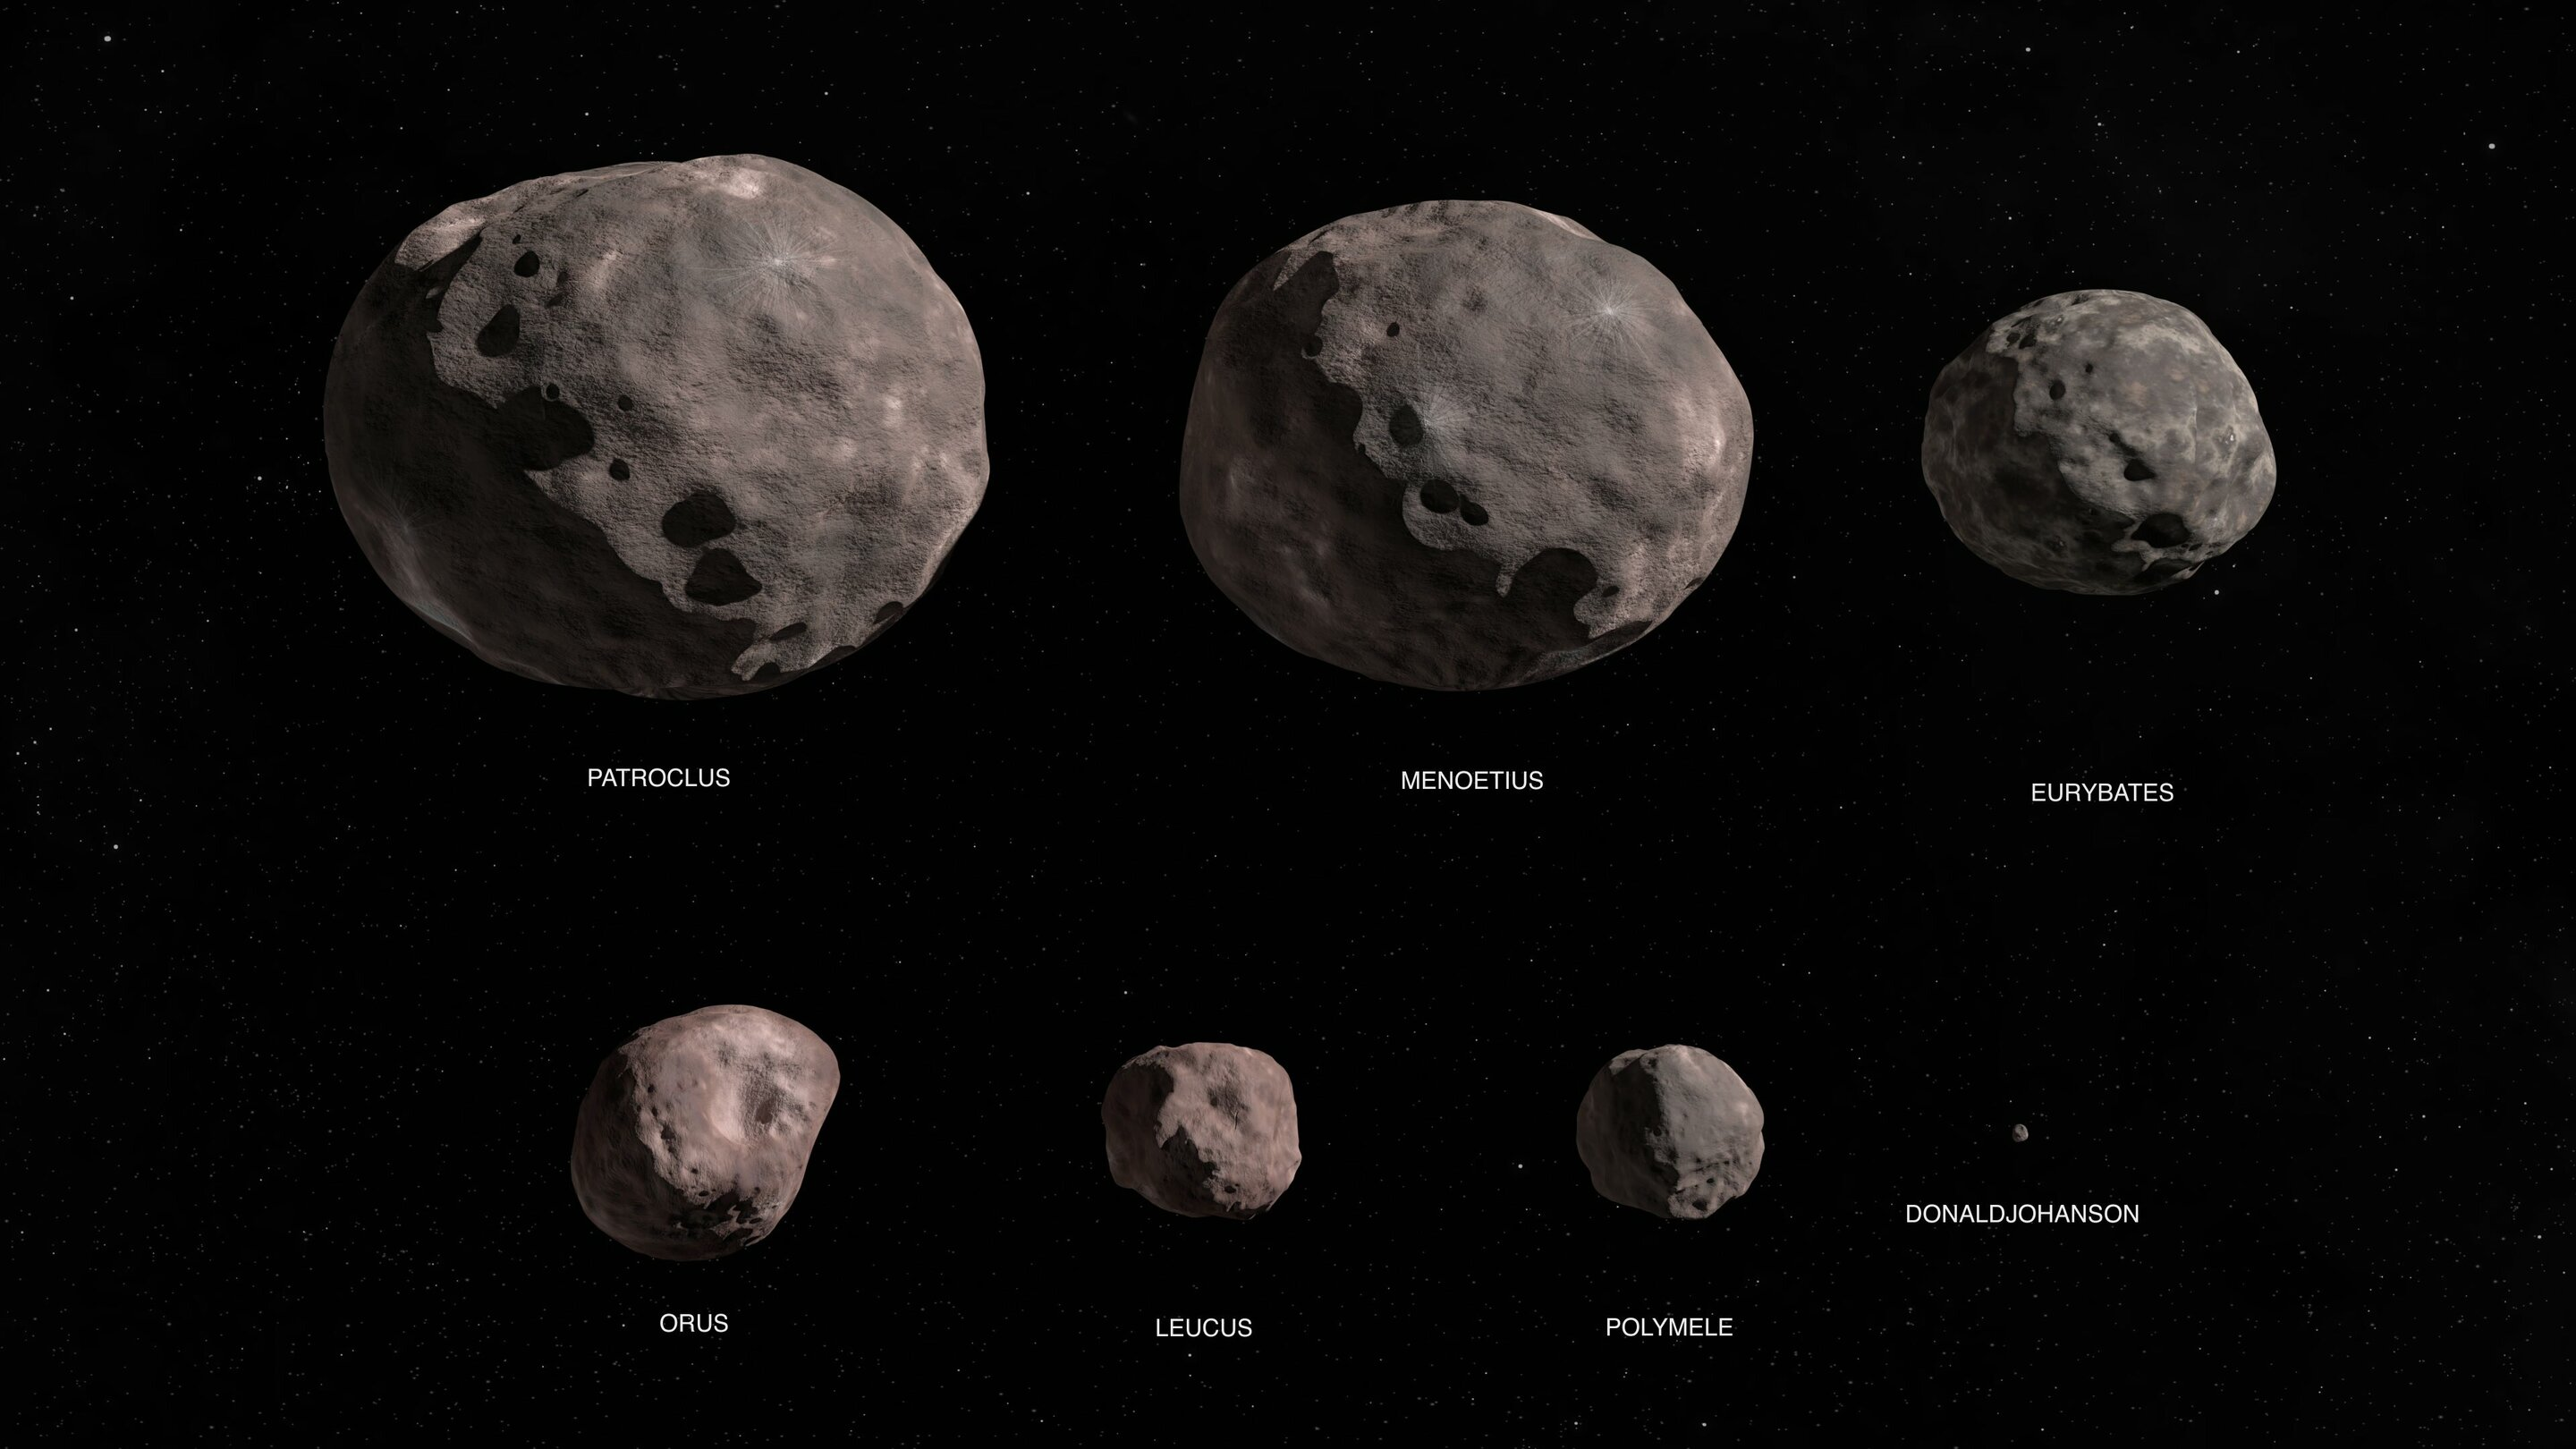 How were the Trojan asteroids discovered and named?